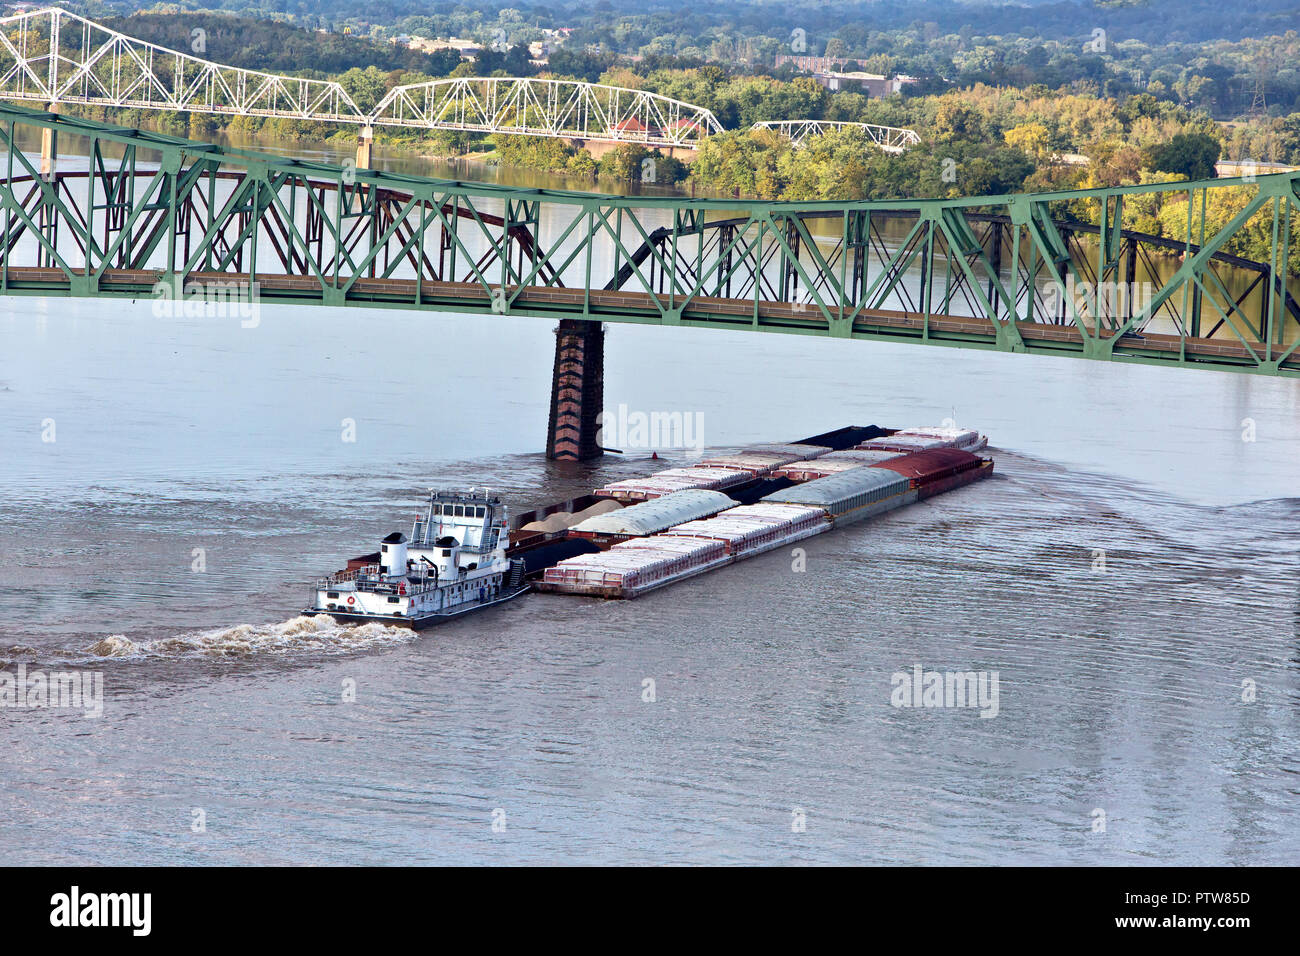 Tugboat 'Allen P. Hall' pushing barges loaded with various covered products including coal, Parkersburg-Belpre cantilever bridge. - Stock Image